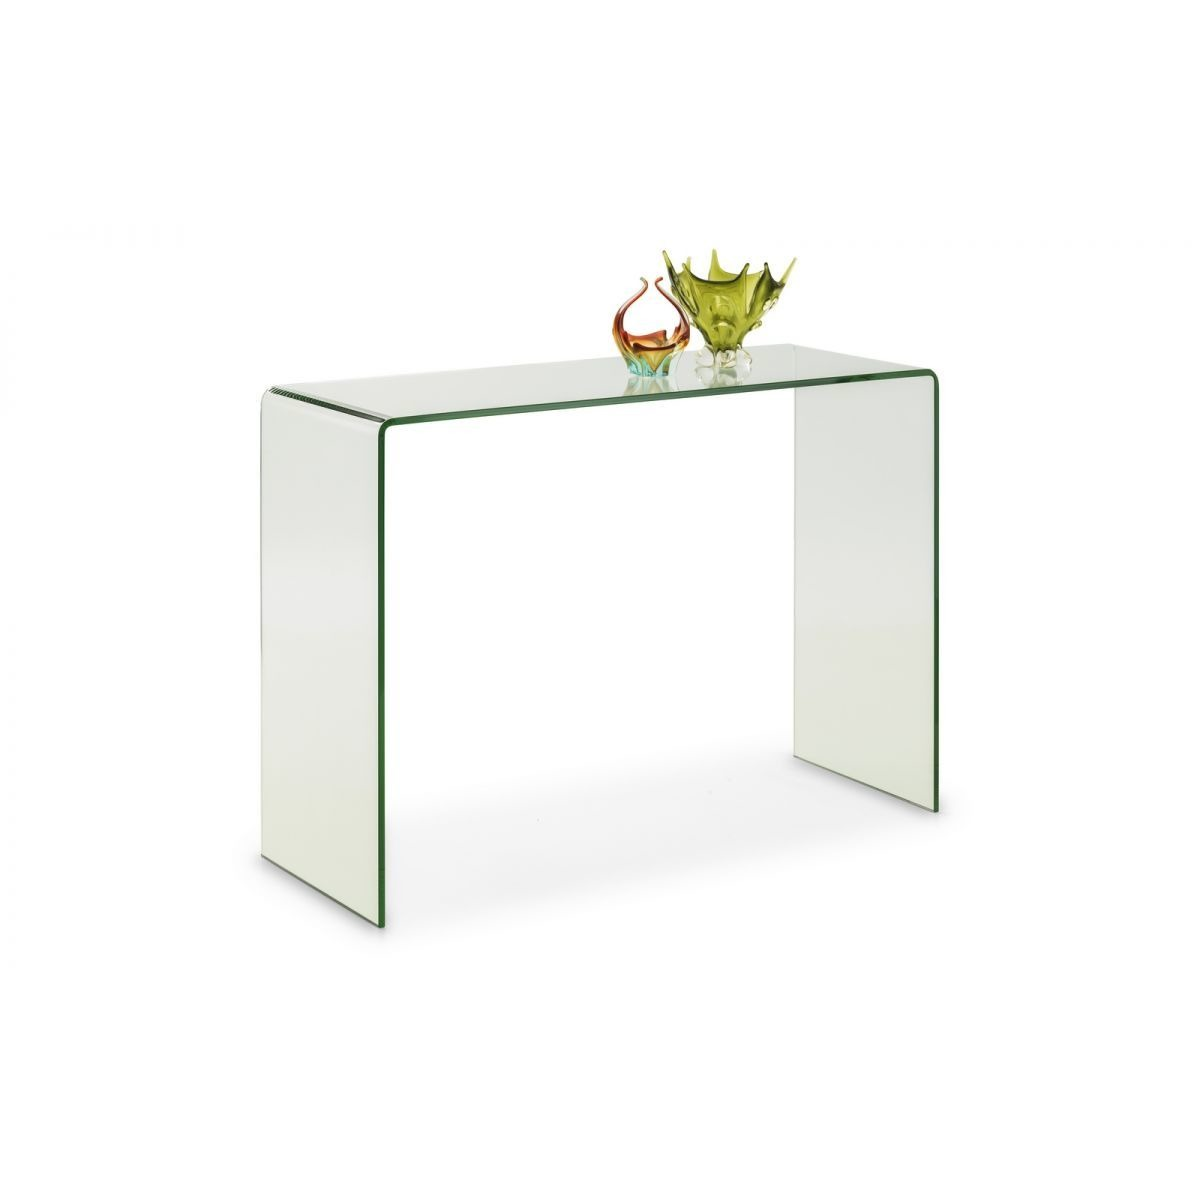 Amalfi Bent Glass Console Table - Perfectly Home Interiors